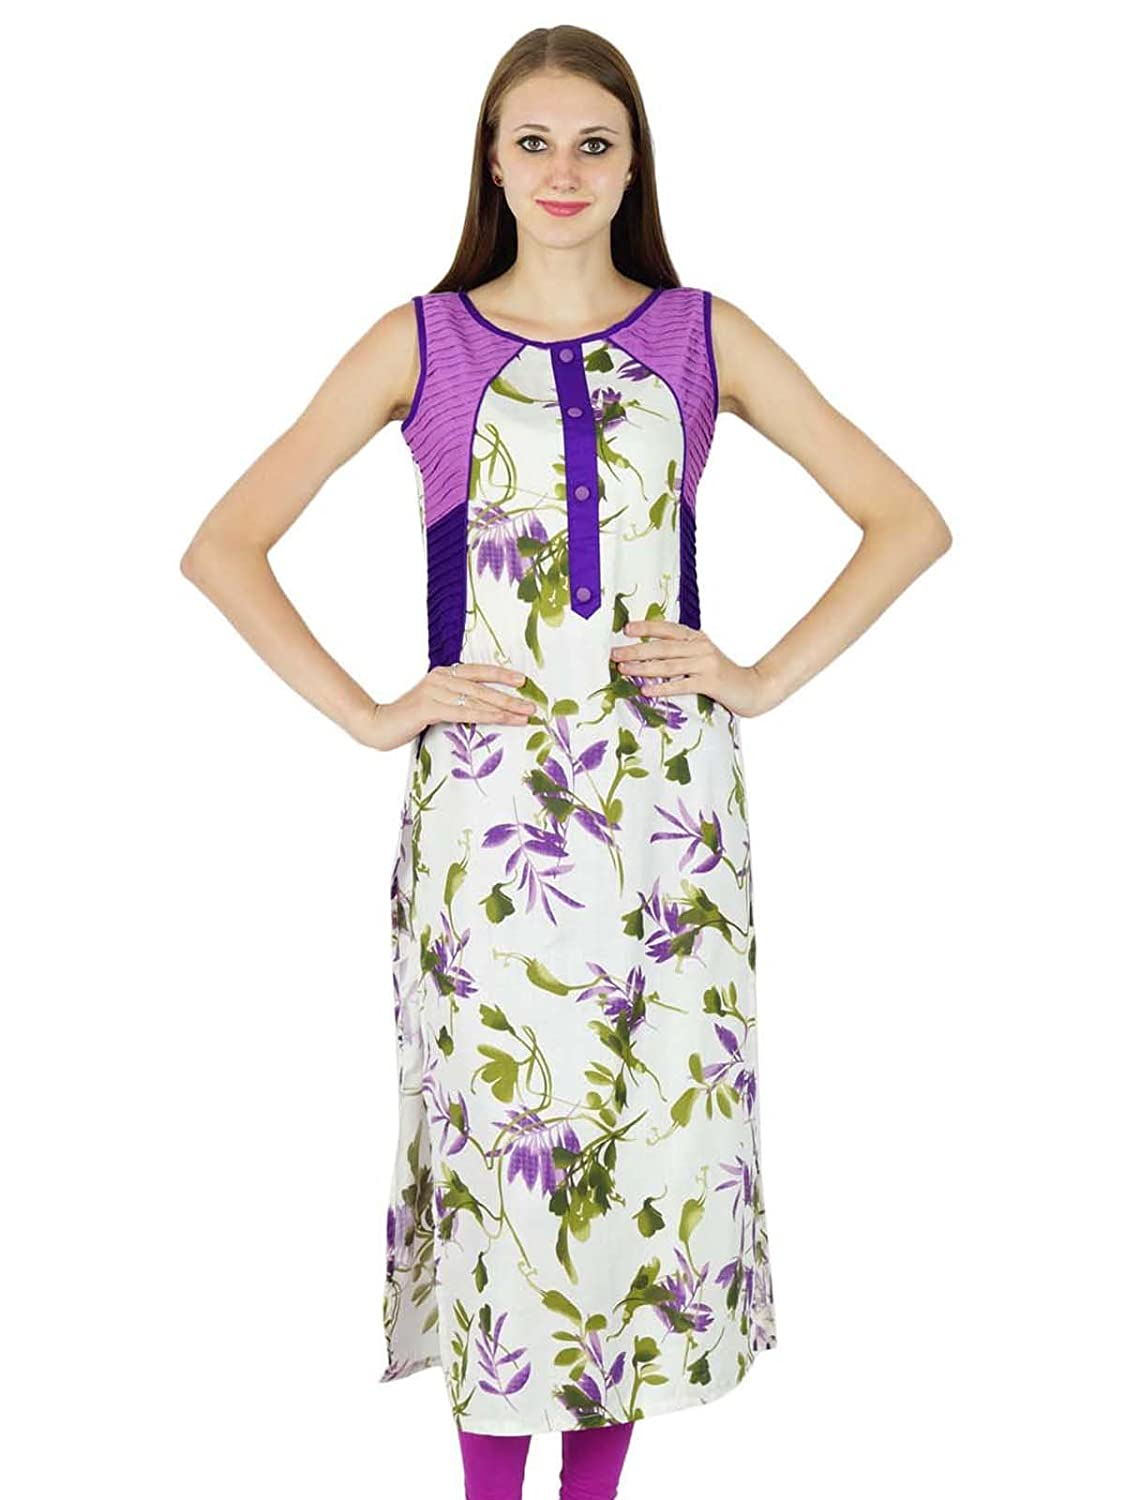 Phagun Designer Bollywood Ethnic Kurta Women Cotton Printed Kurti Casual Tunic Dress